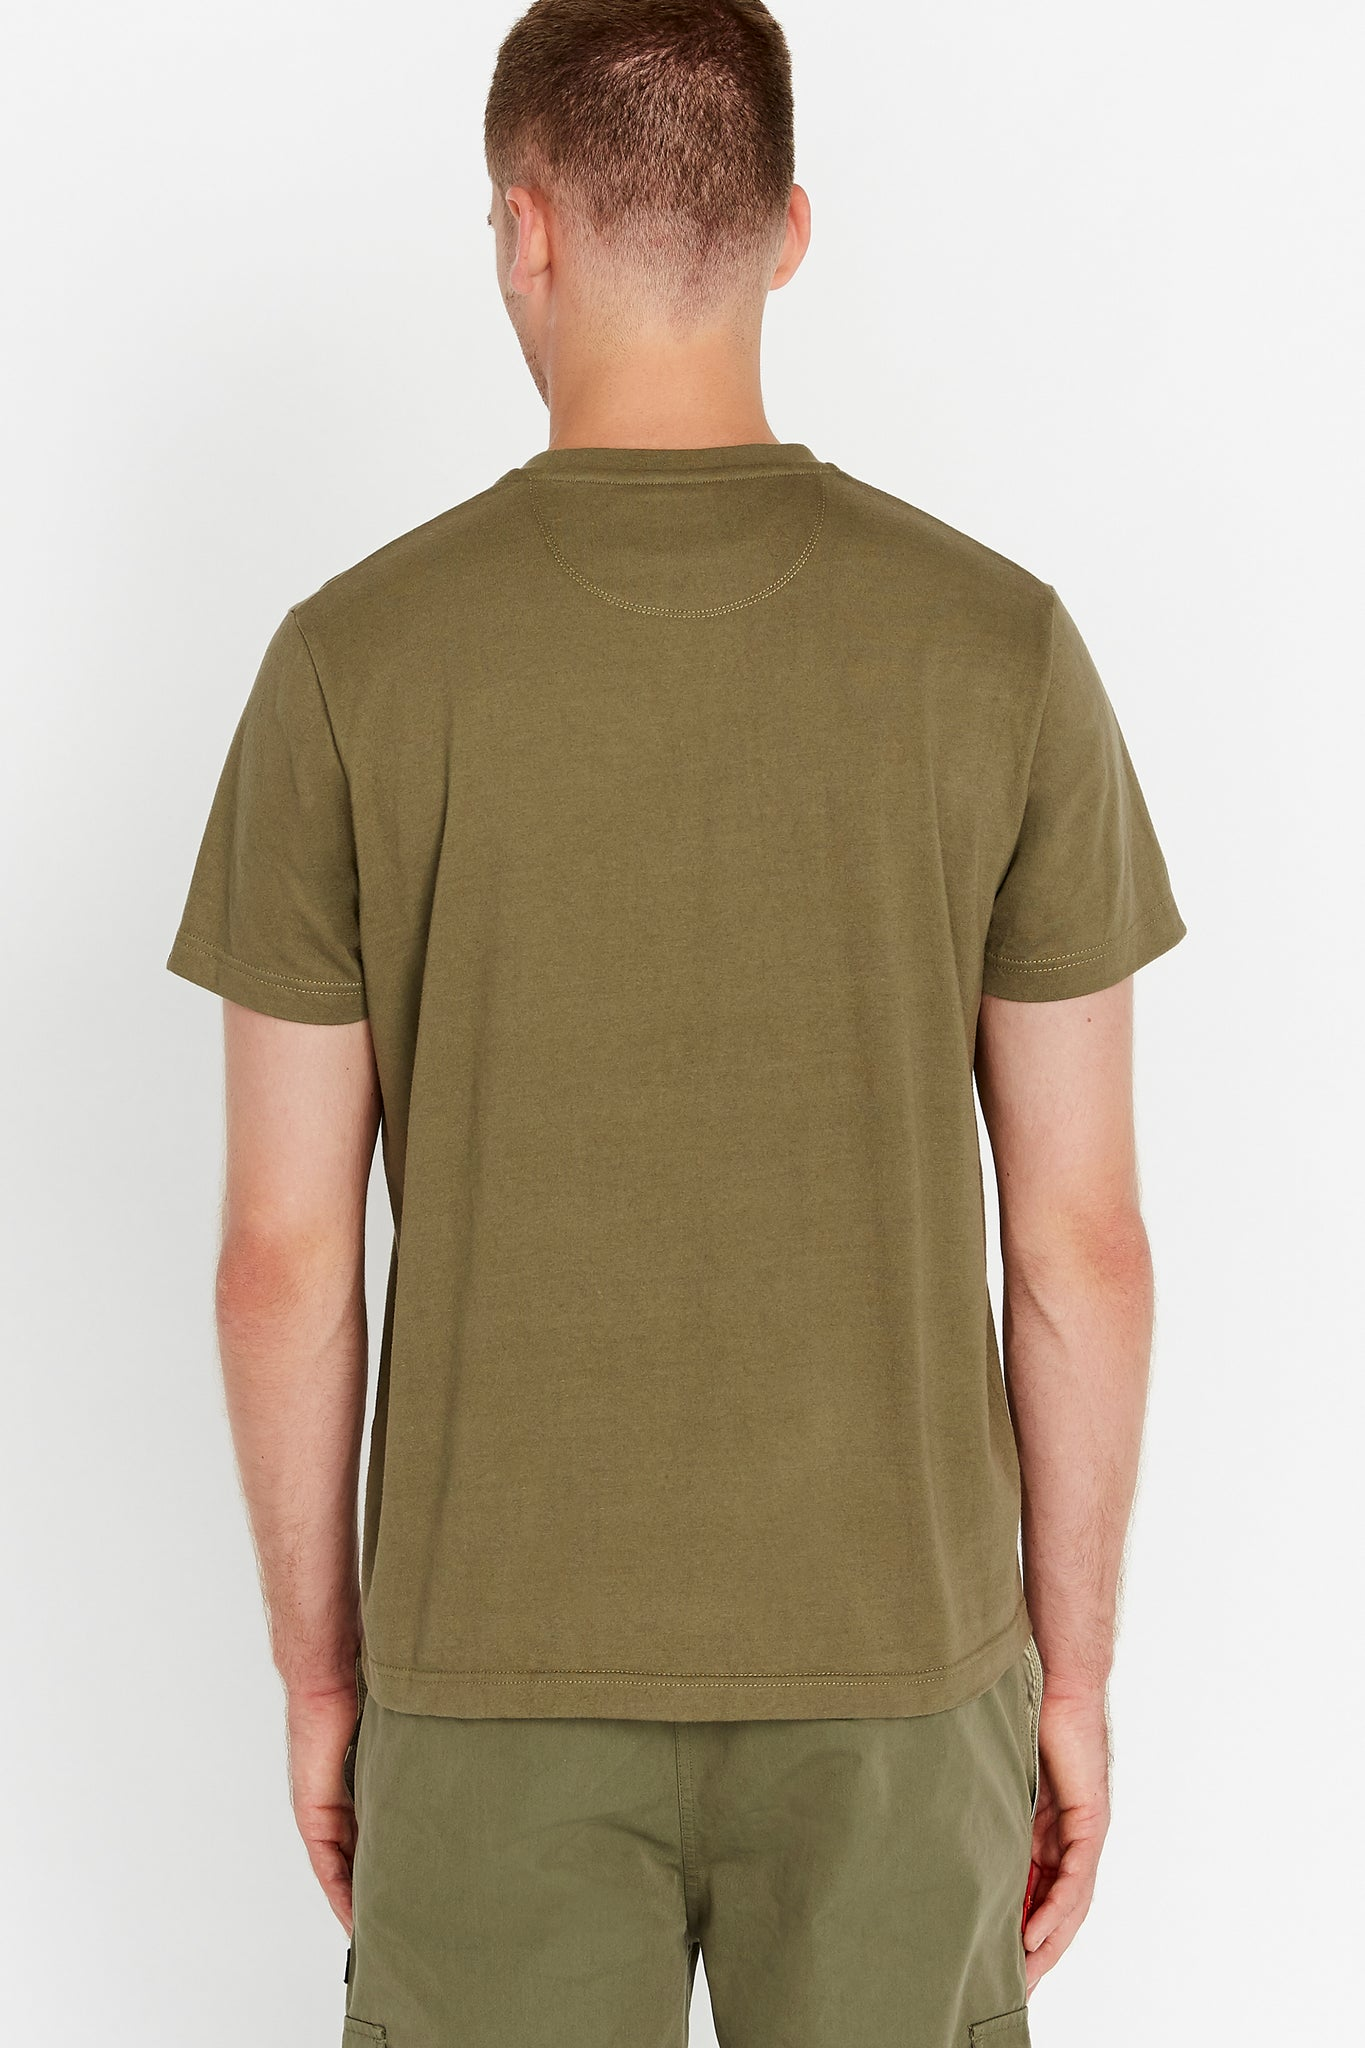 Back view of men wearing an olive short sleeve crew T-shirt